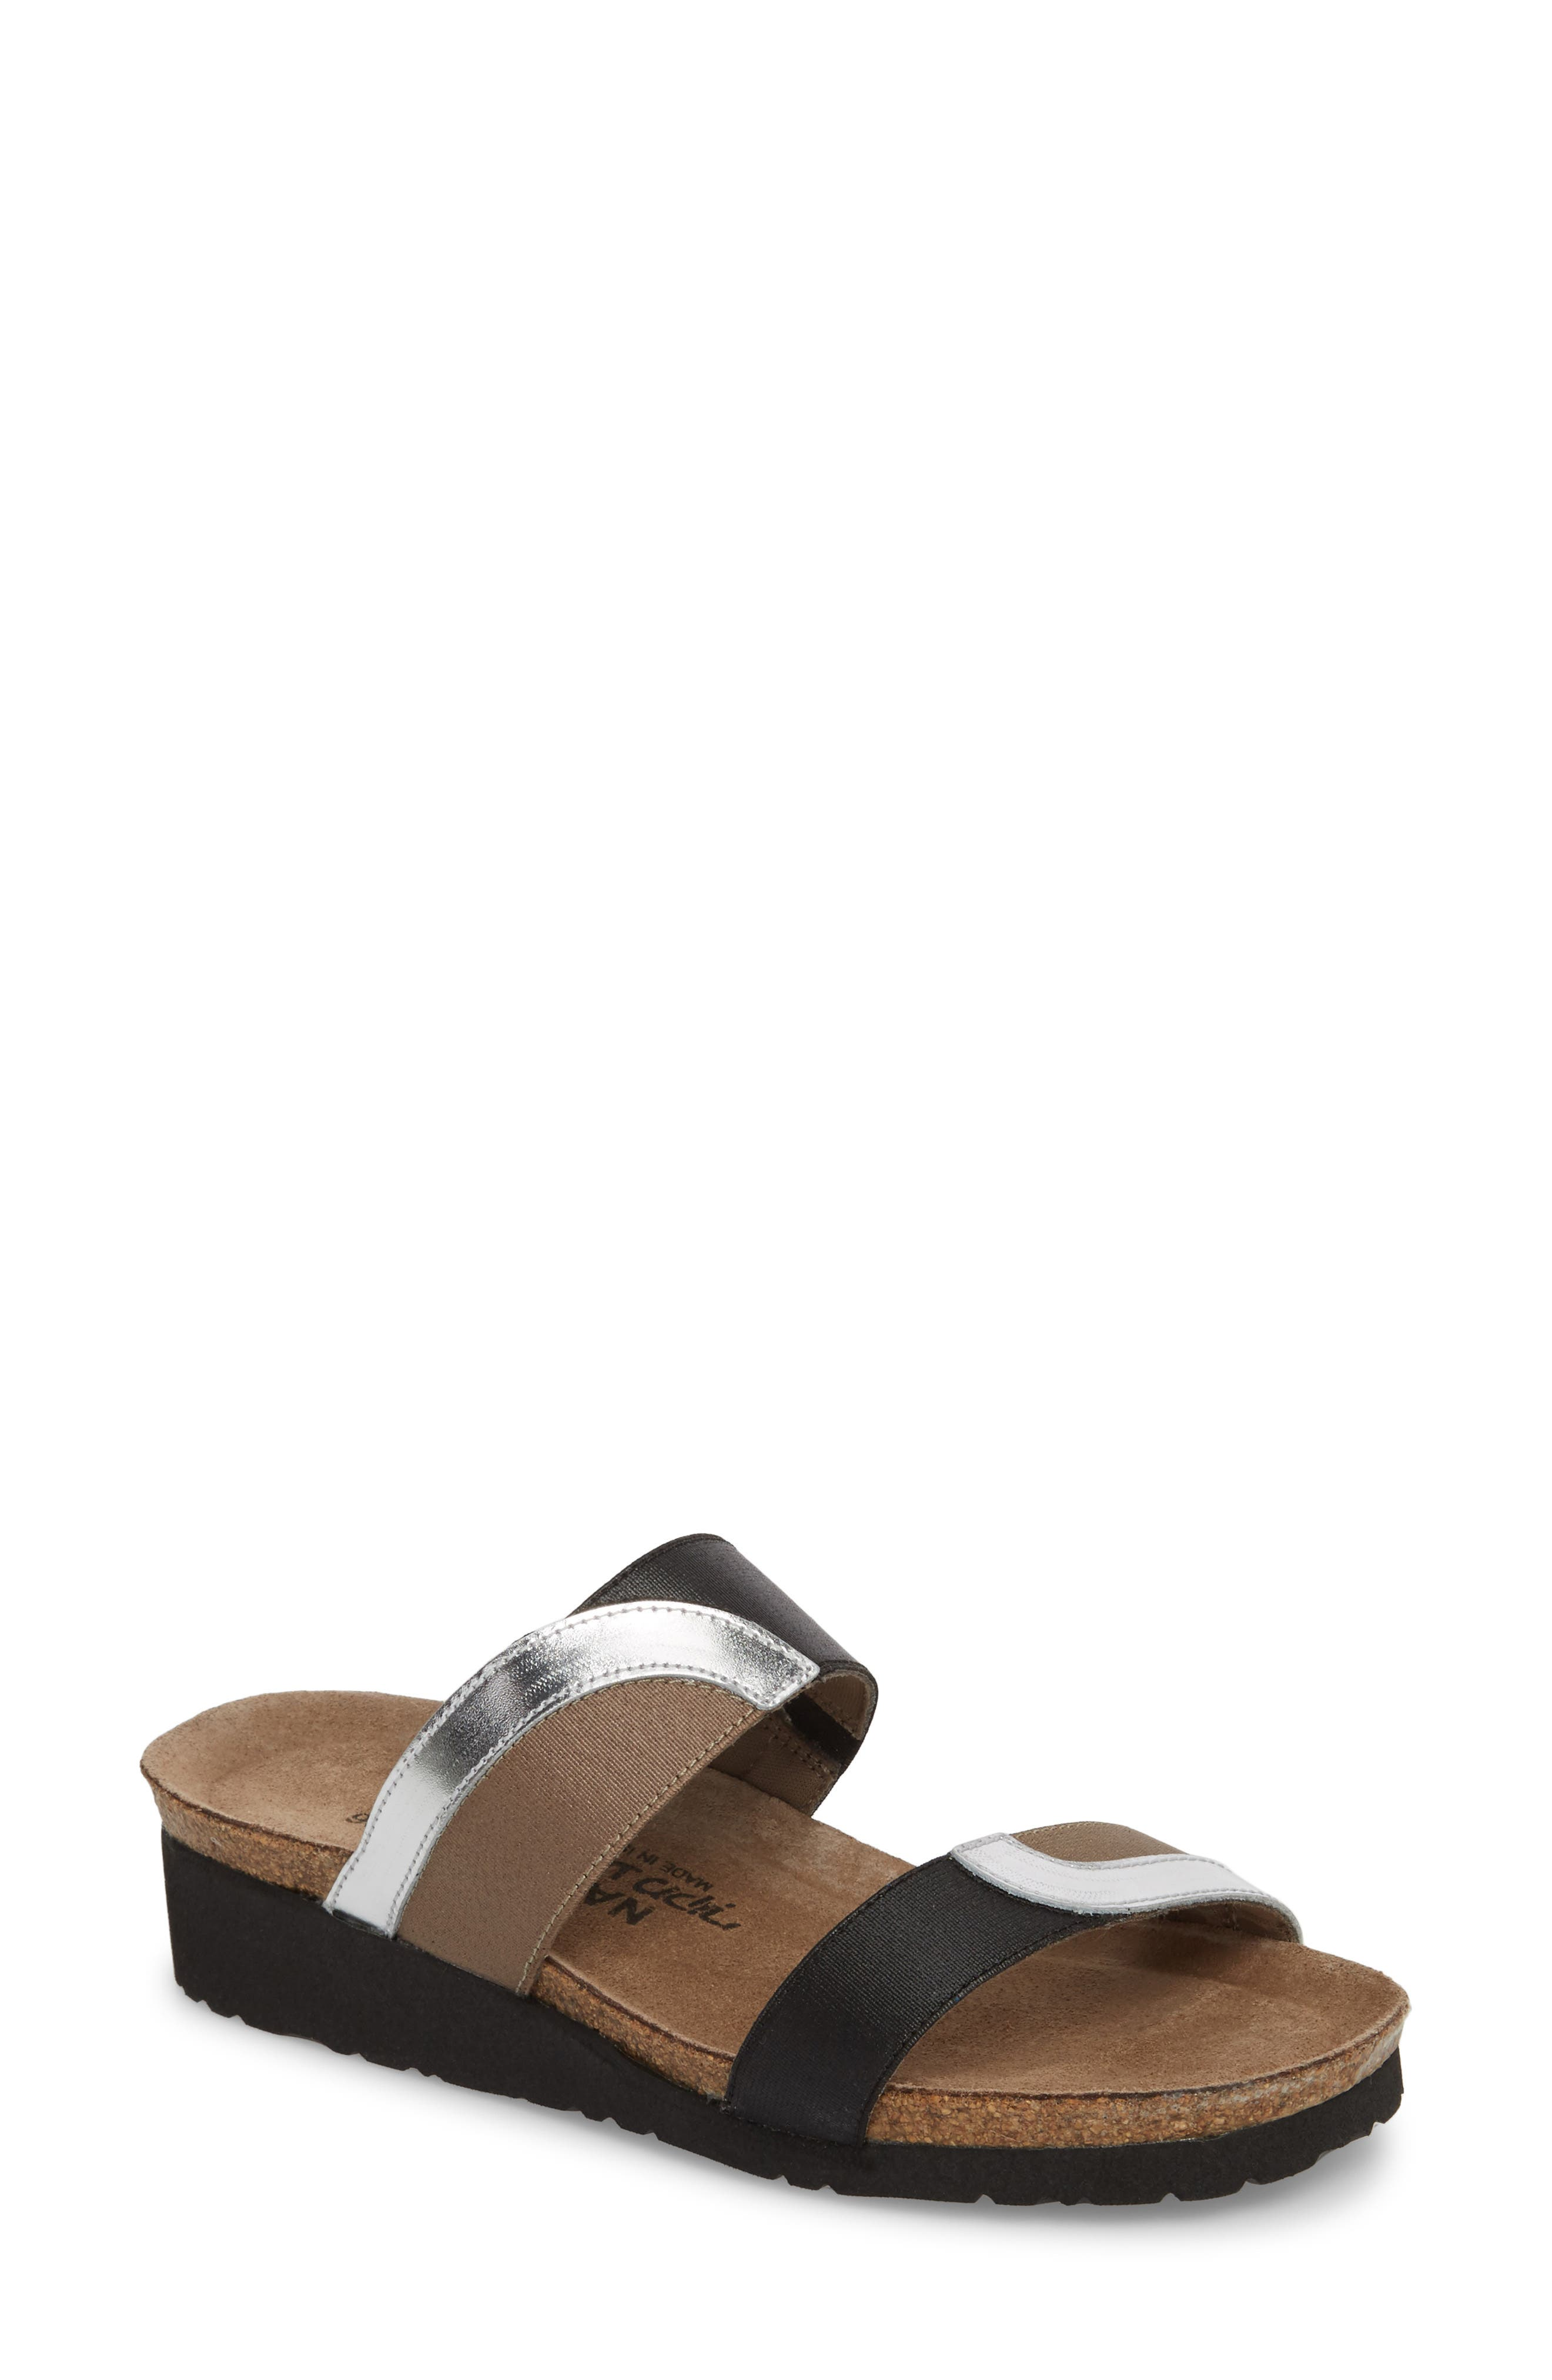 Mixed-media, multicolored straps distinguish a comfort-minded slide sandal fitted with a well-cushioned anatomic footbed with arch support and a wedge sole. Style Name: Naot Frankie Slide Sandal (Women). Style Number: 5573751. Available in stores.